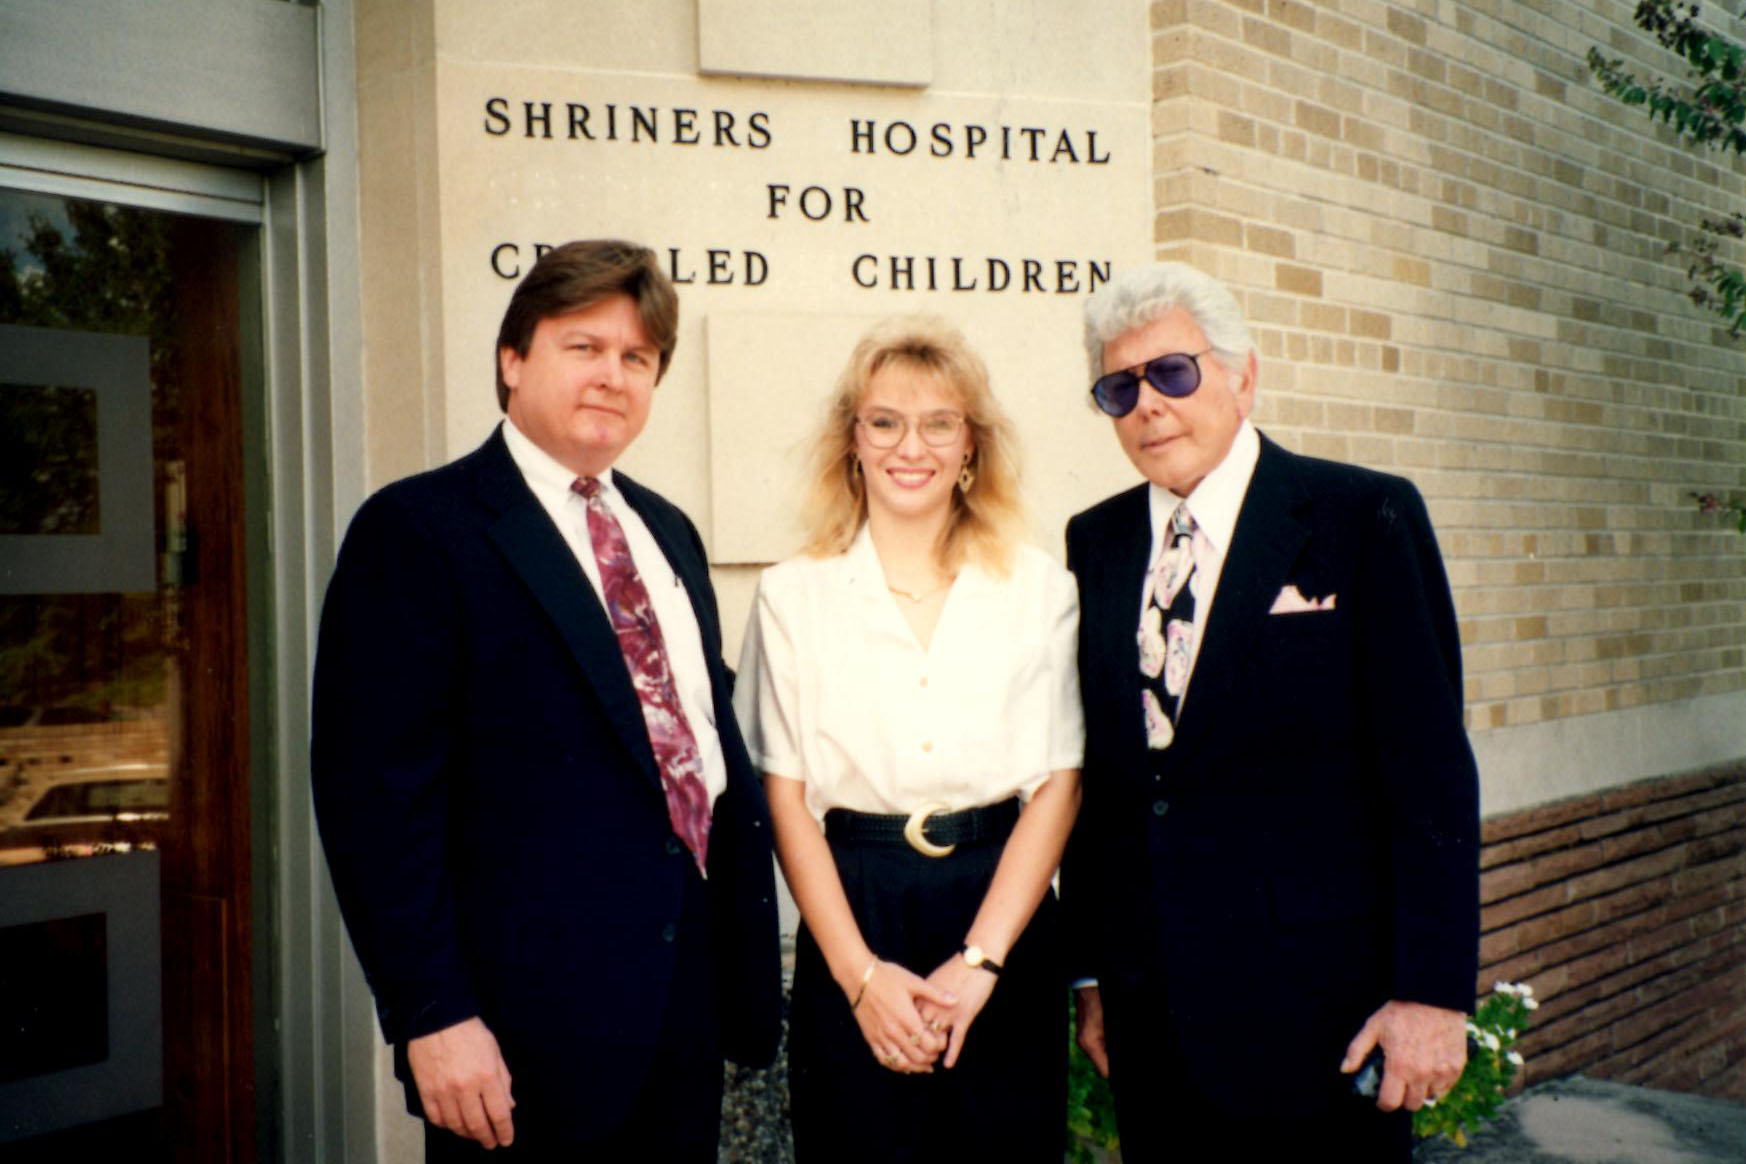 Pictured above is Muessig with his client, Dayton resident Lee Ann West, and the legendary Marvin Zindler. Muessig and Zindler were arranging for West to have lower back surgery at the Shriners Hospital for Crippled Children for injuries sustained in an auto accident.